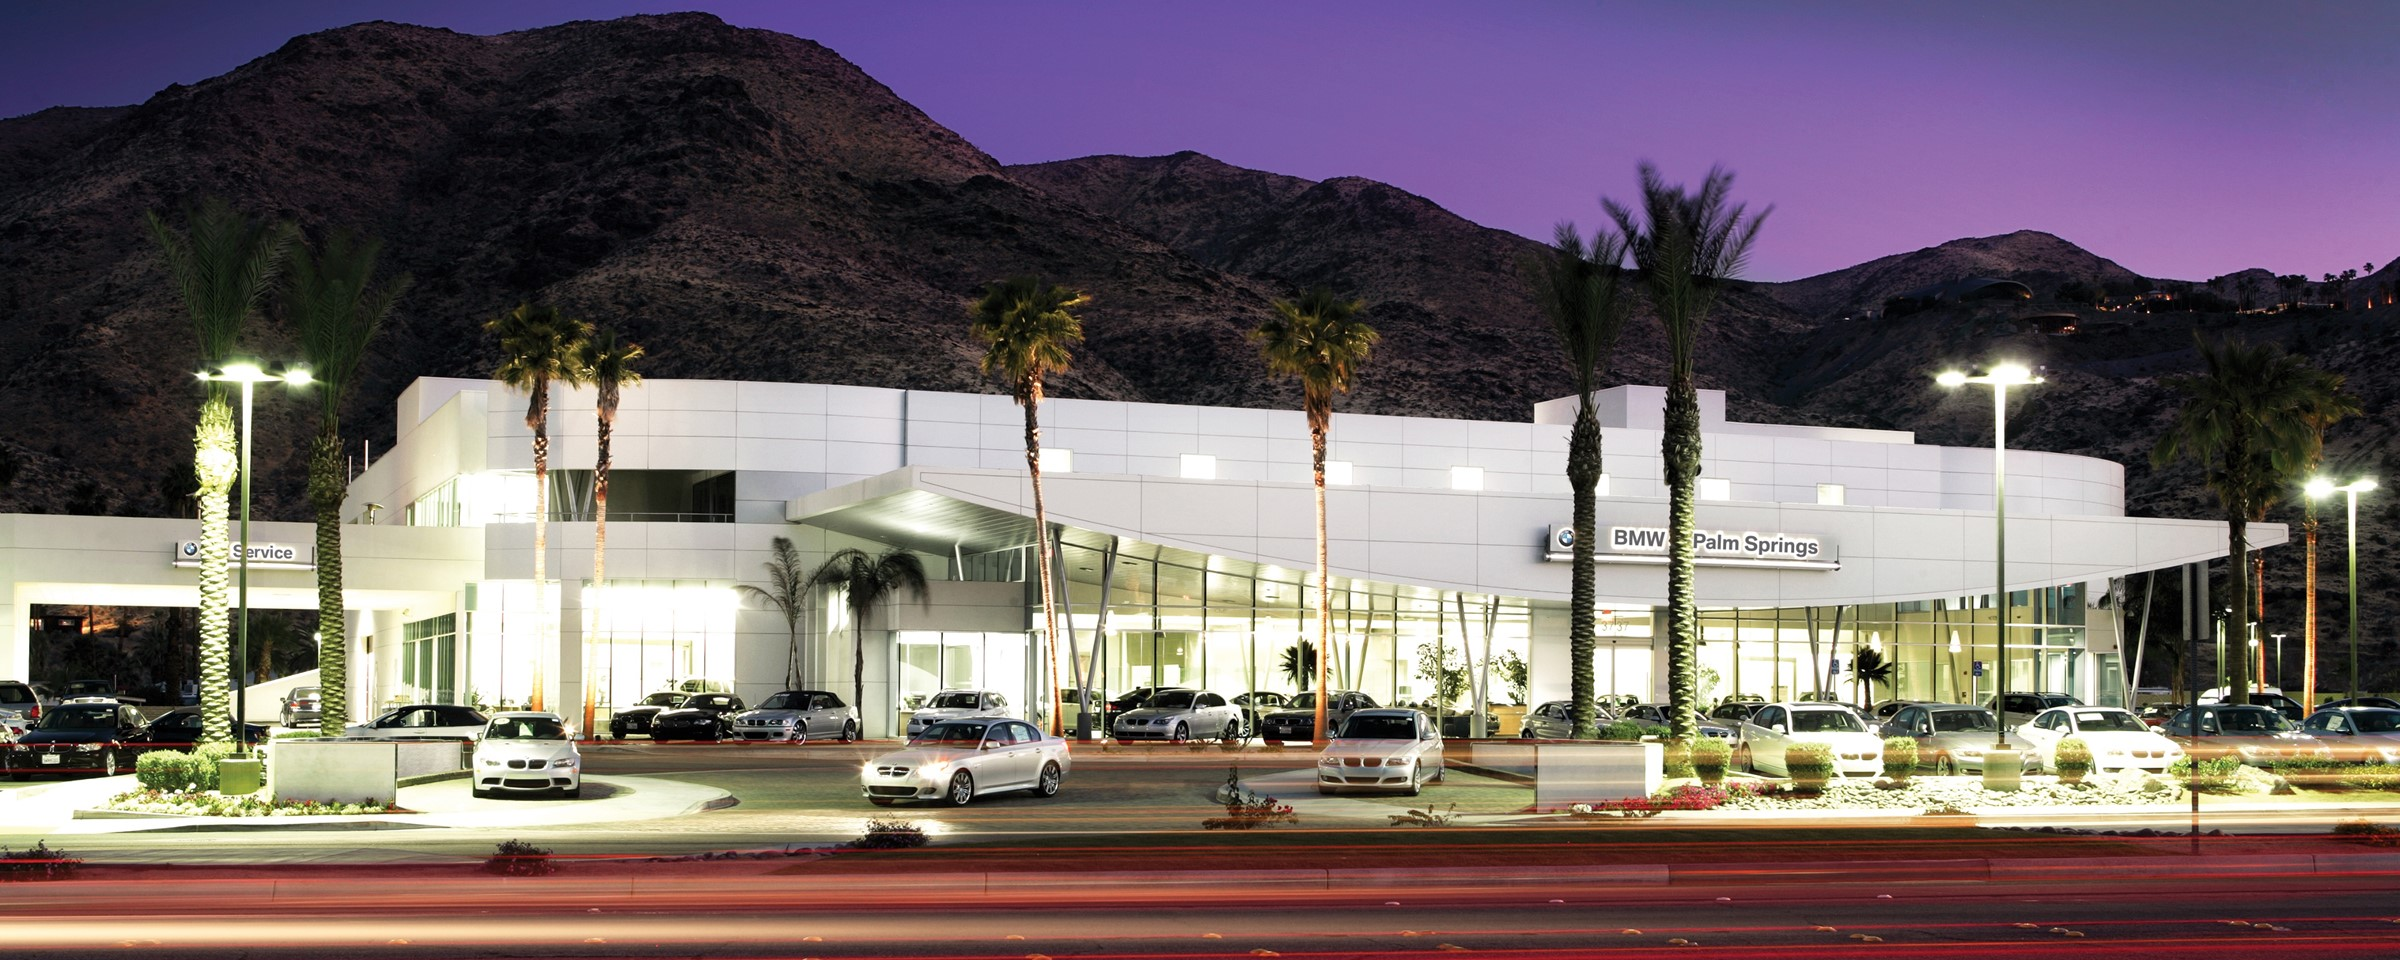 Bmw Palm Springs >> Indigo Auto Group Acquires Bmw Of Palm Springs Indigo Auto Group Blog